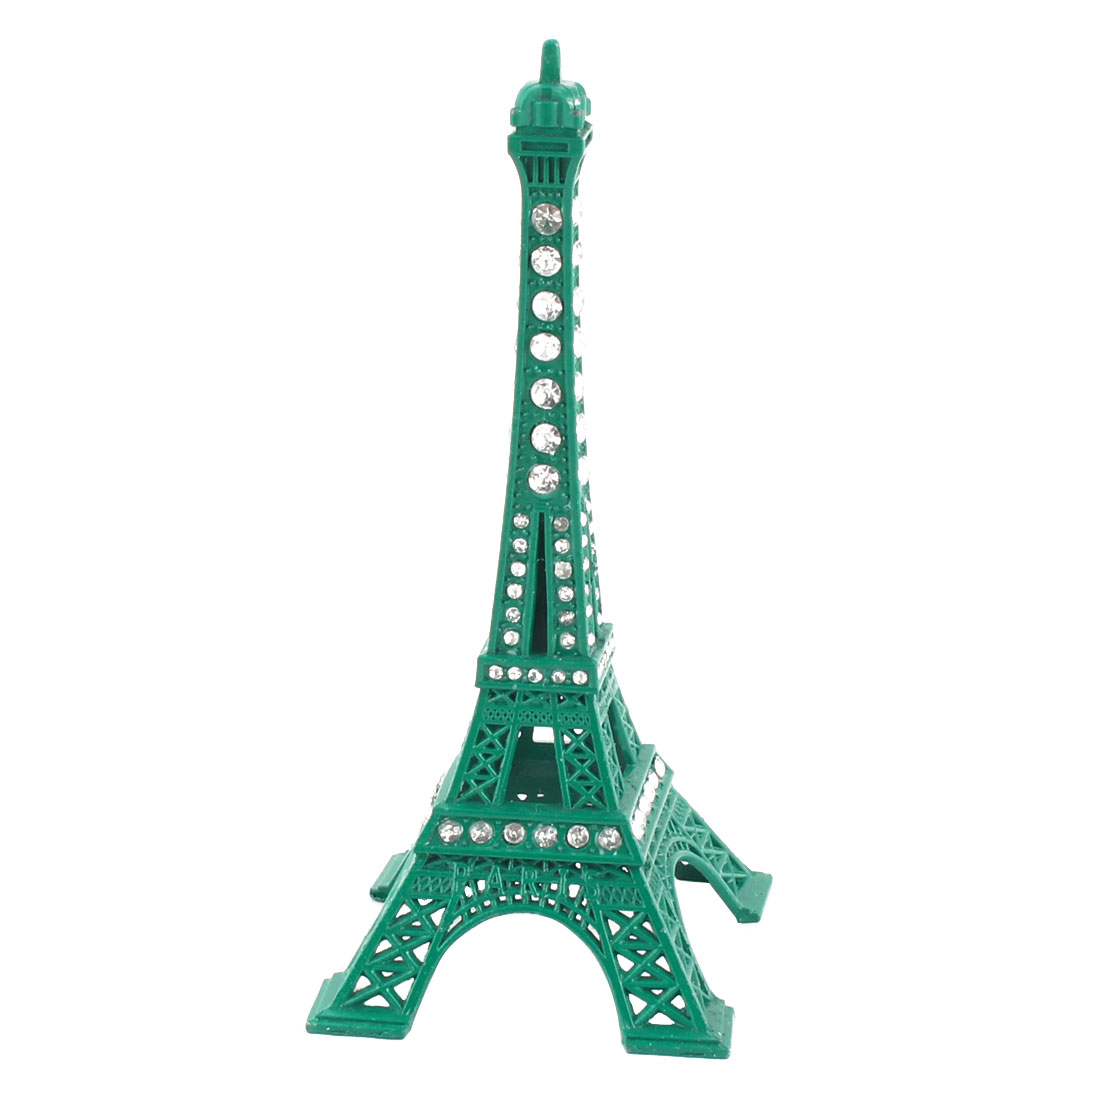 Home Dresser Metal Miniature Statue Paris Eiffel Tower Model Souvenir Ornament Green